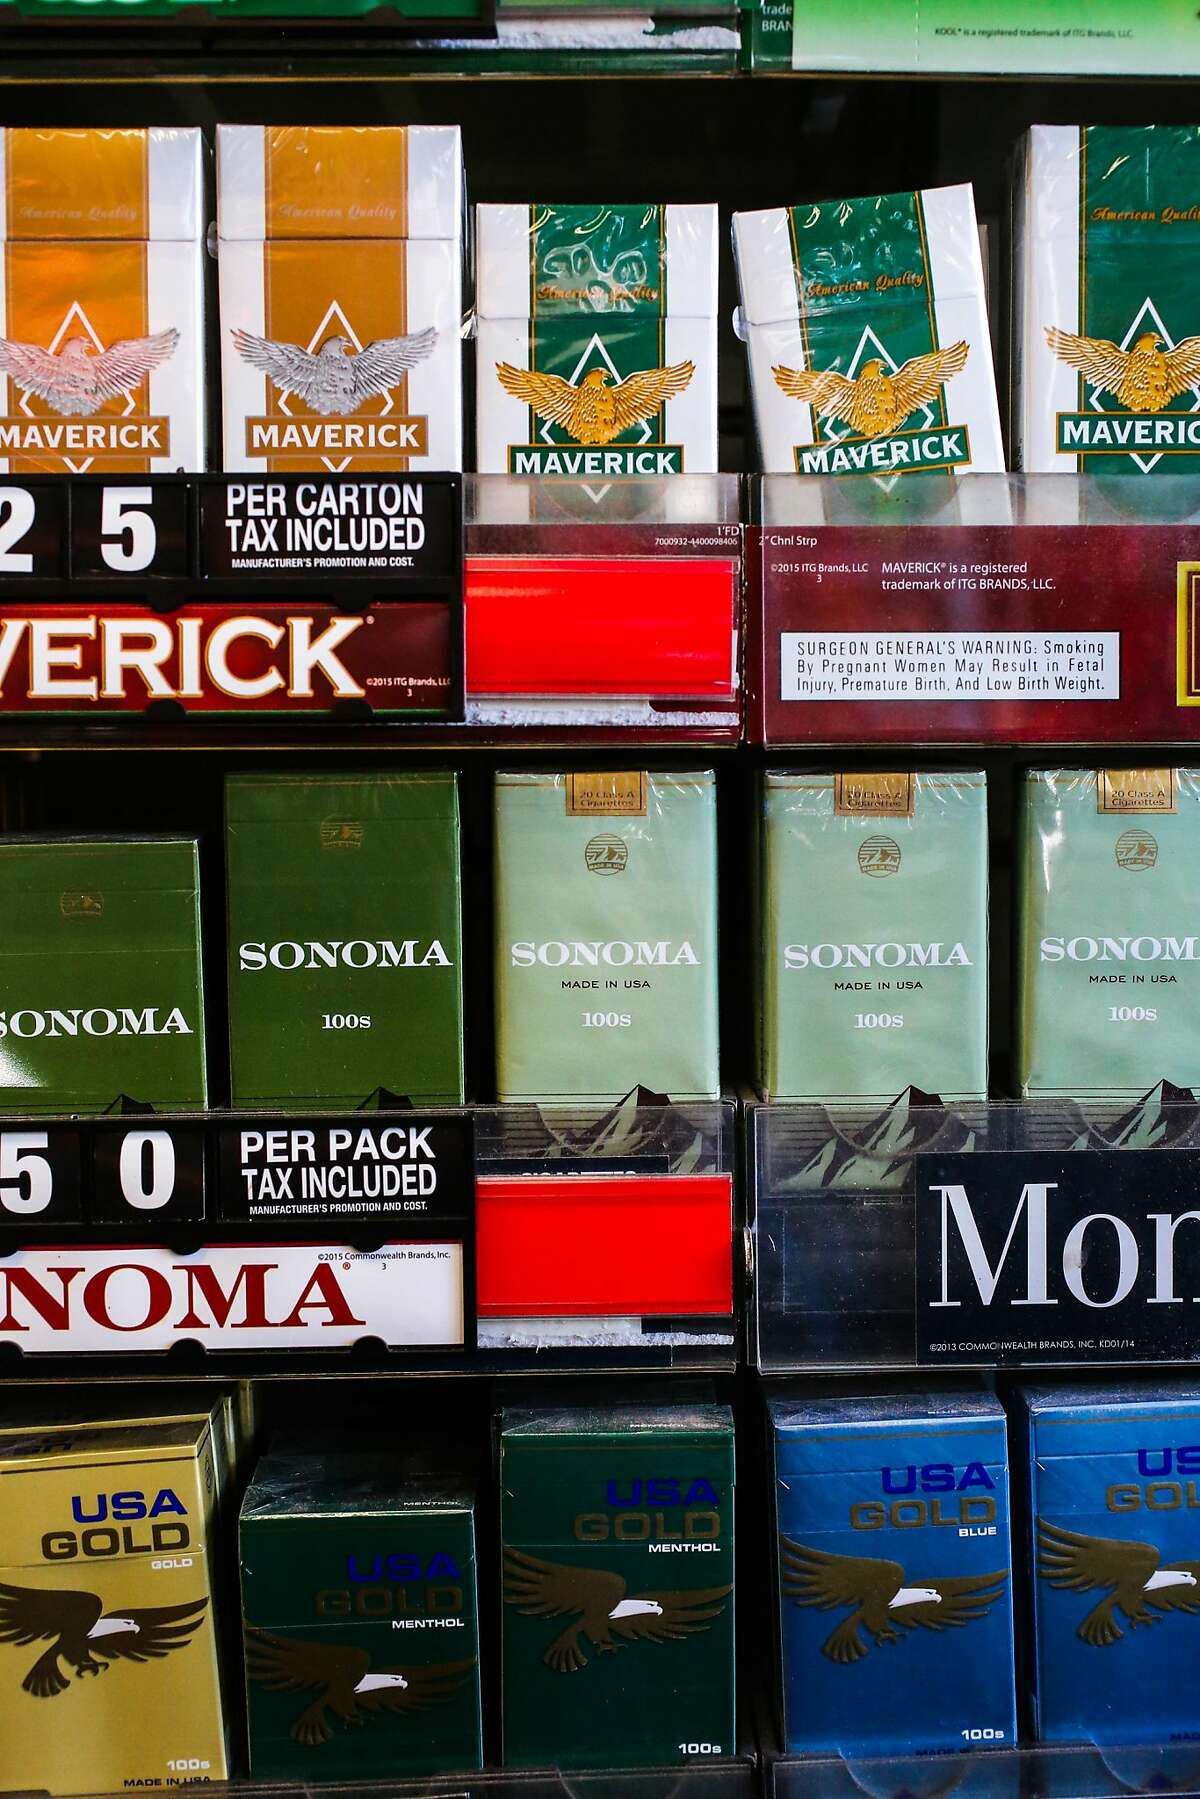 Tobacco and flavored tobacco is seen on the shelves at City Smoke and Vape Shop in San Francisco, California, on Sunday, June 11, 2017.